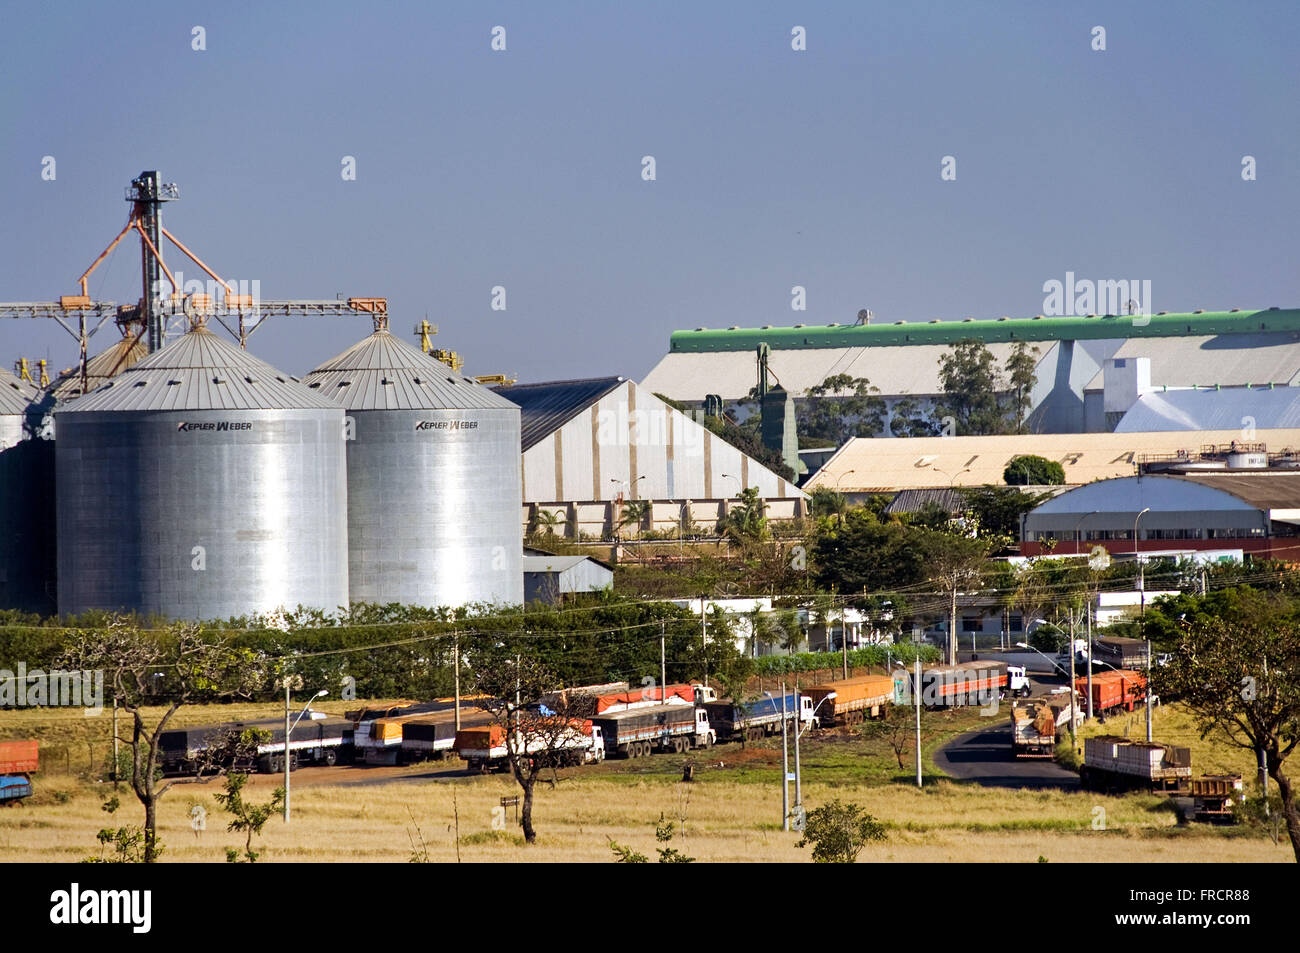 Industries processing grains in Uberlandia in Triangulo Mineiro - Stock Image